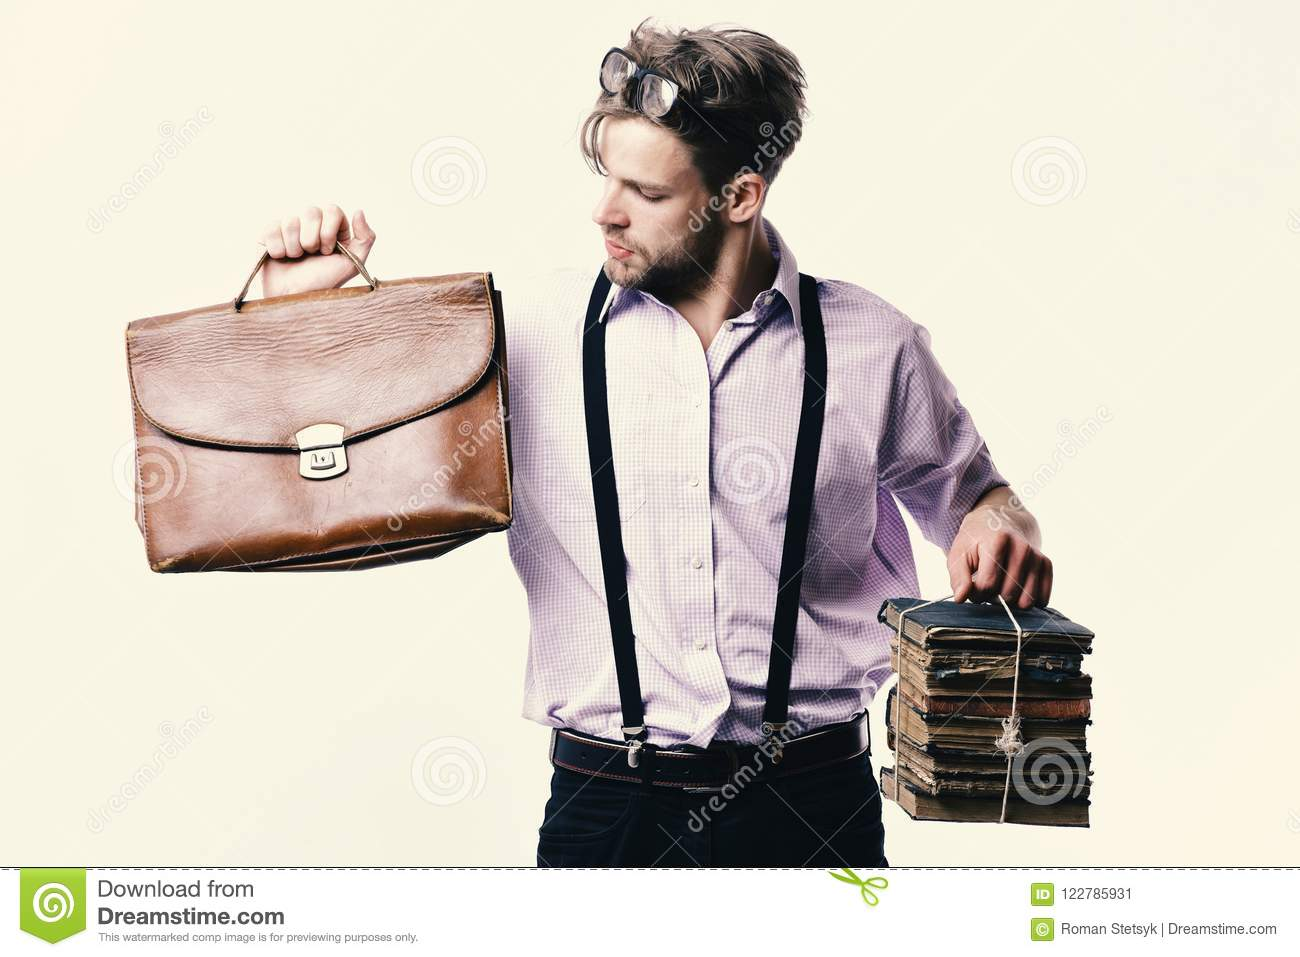 Man or teacher with bristle, glasses and curious face. Nerd or bookworm wearing suspenders. Man with briefcase